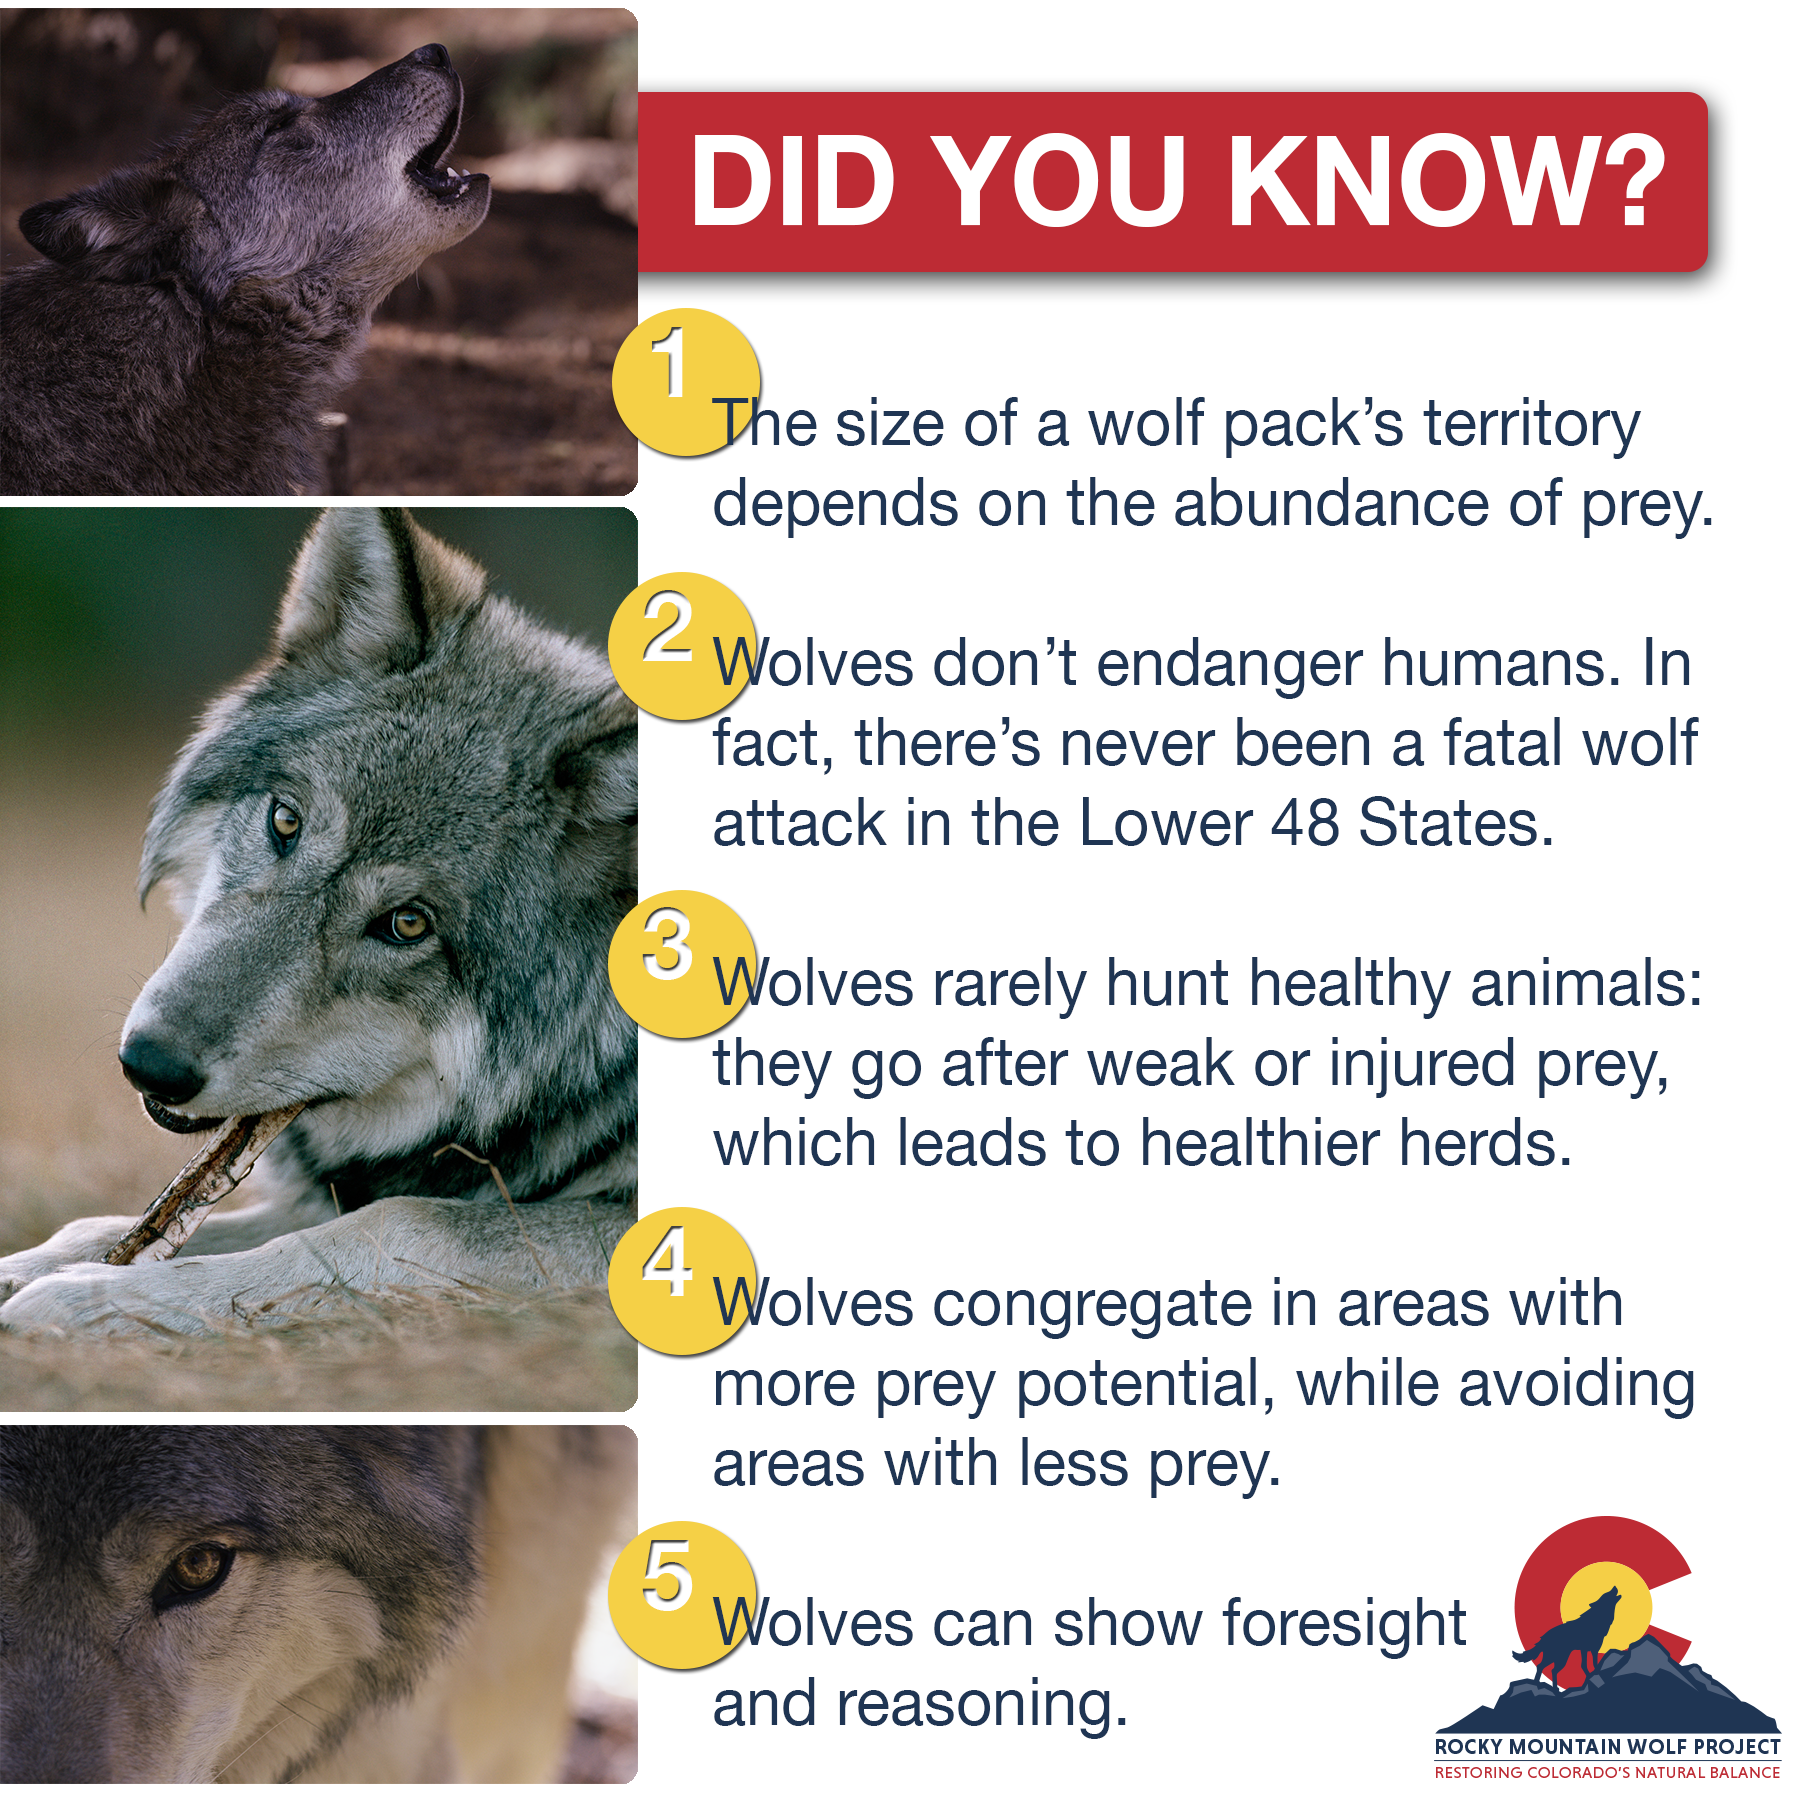 RMWP_Wolves-5-Facts.png